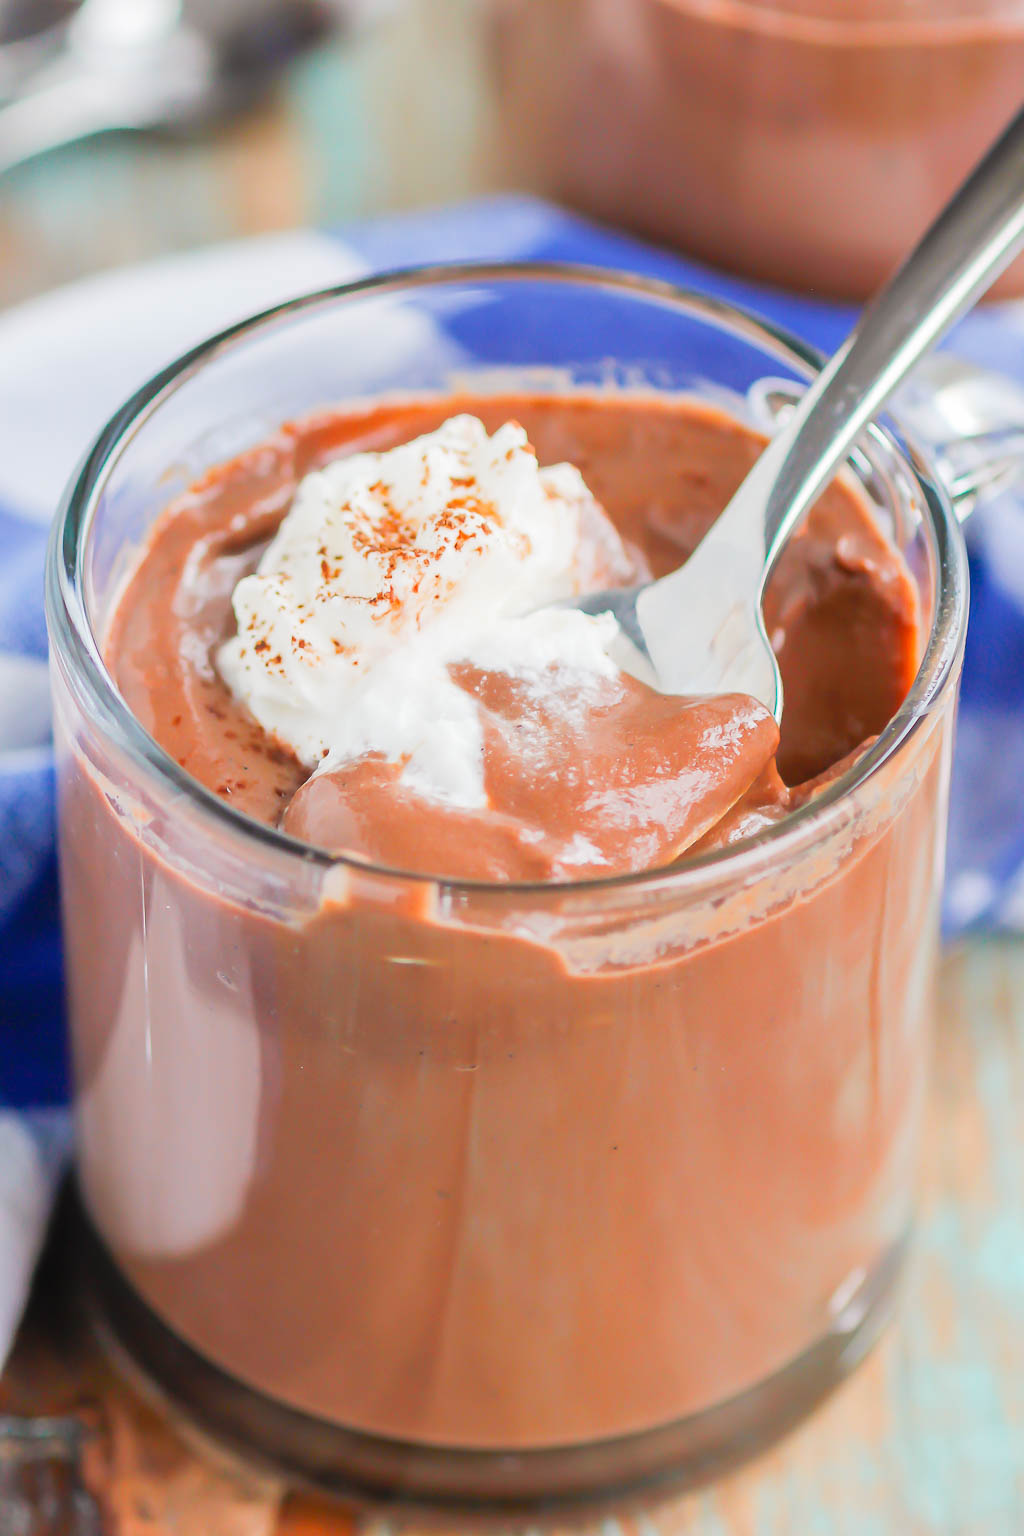 Easy Chocolate Pudding is made completely from scratch and loaded with flavor. Thick, creamy, and extra chocolatey, this classic dish will be a favorite for years to come!